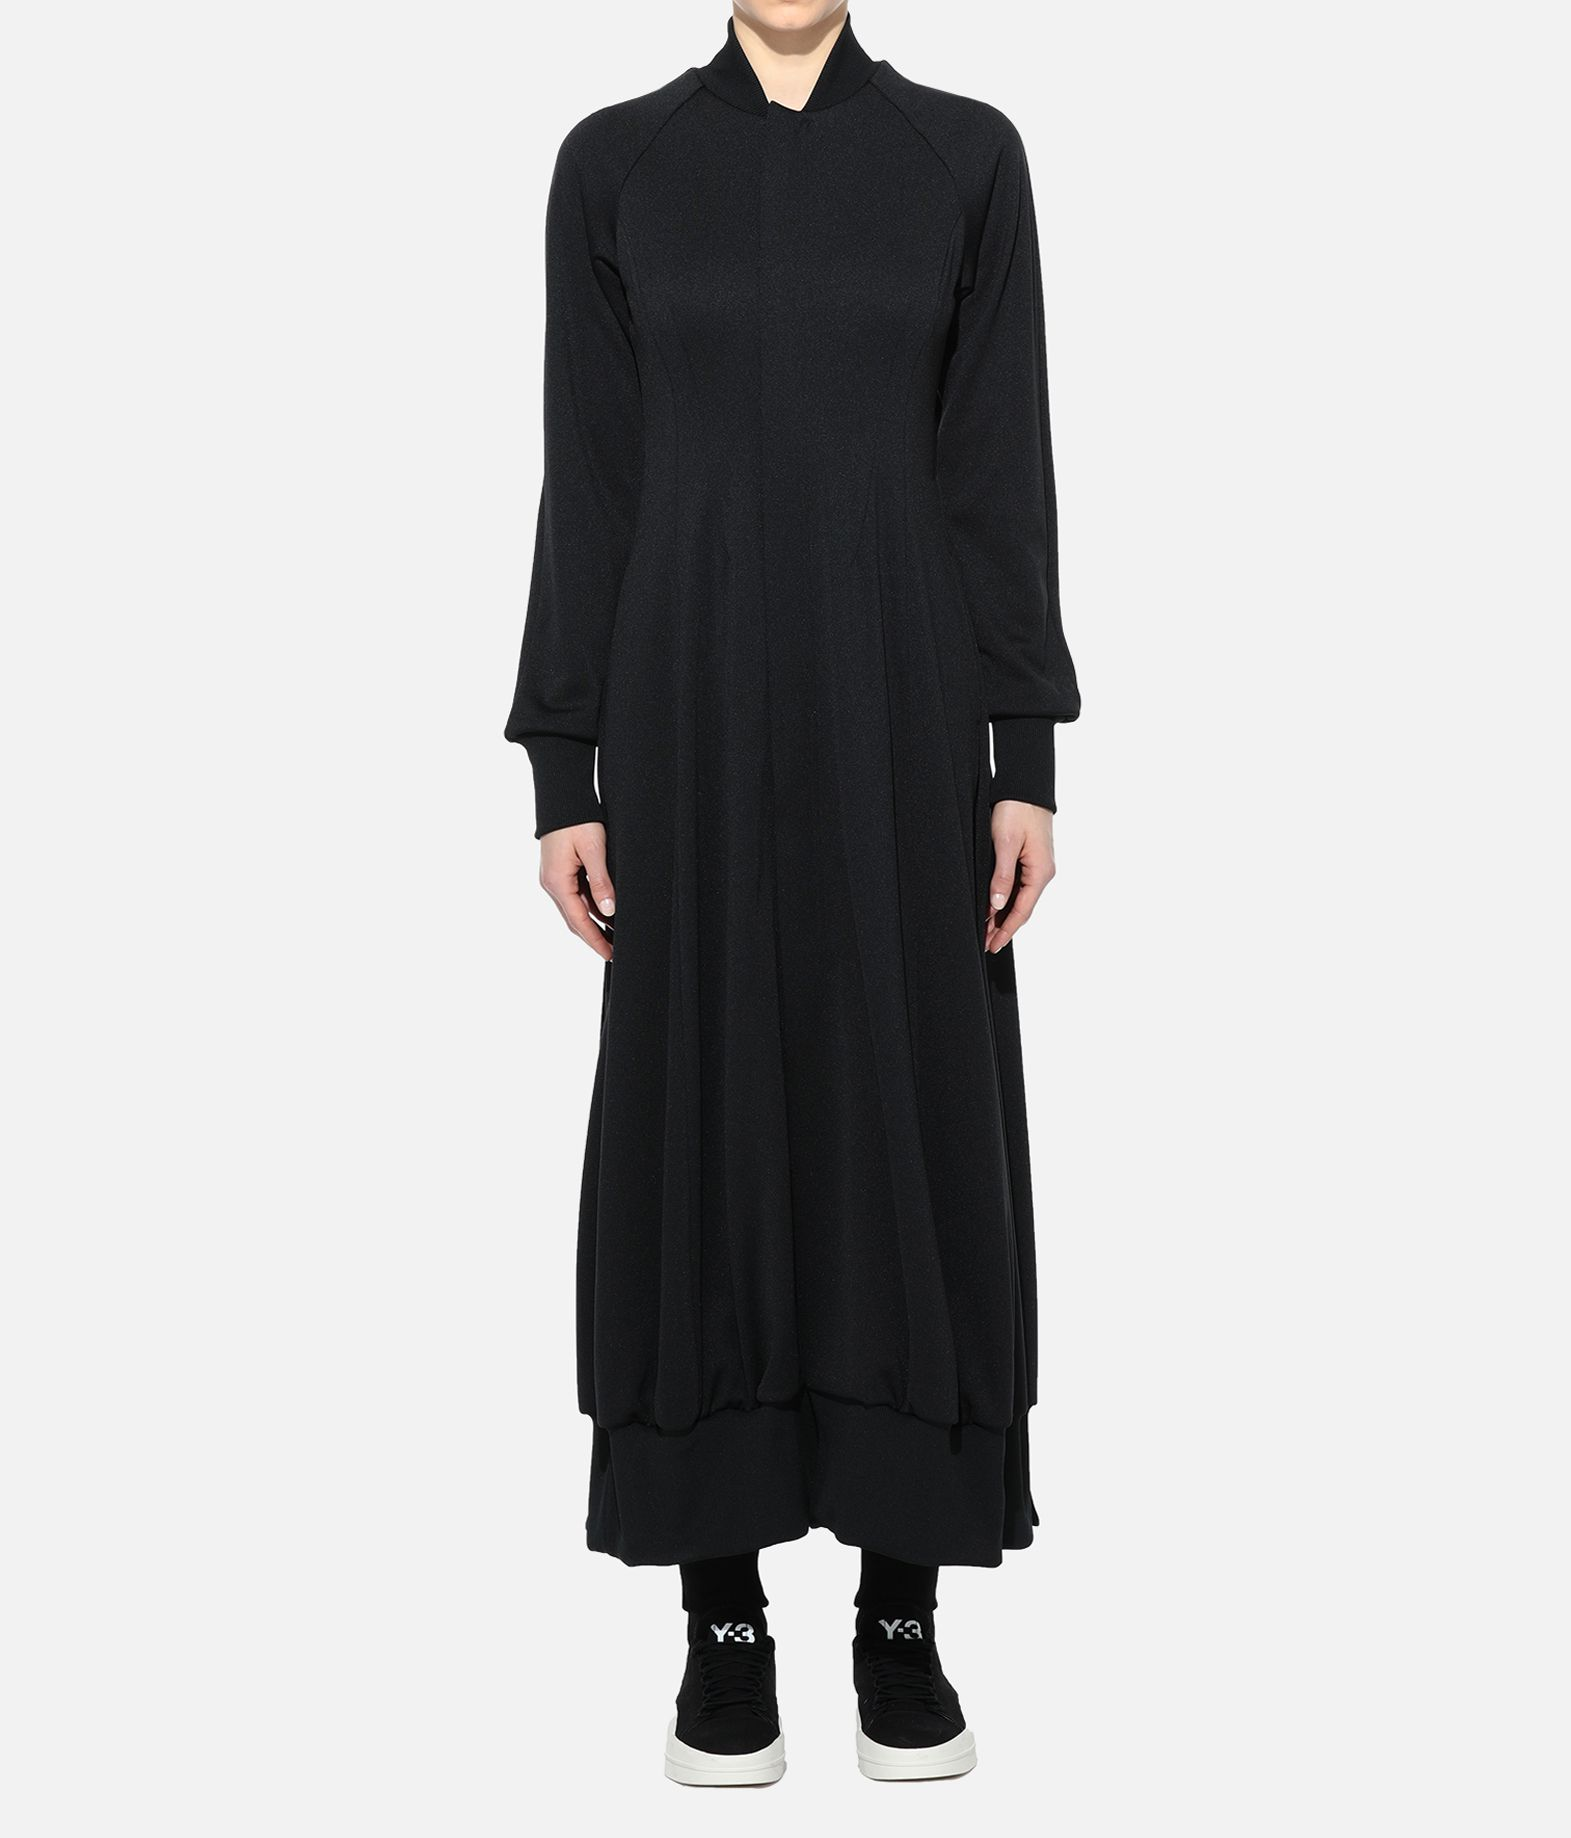 Y-3 Y-3 Yohji Letters Track Jacket Dress Track top Donna r